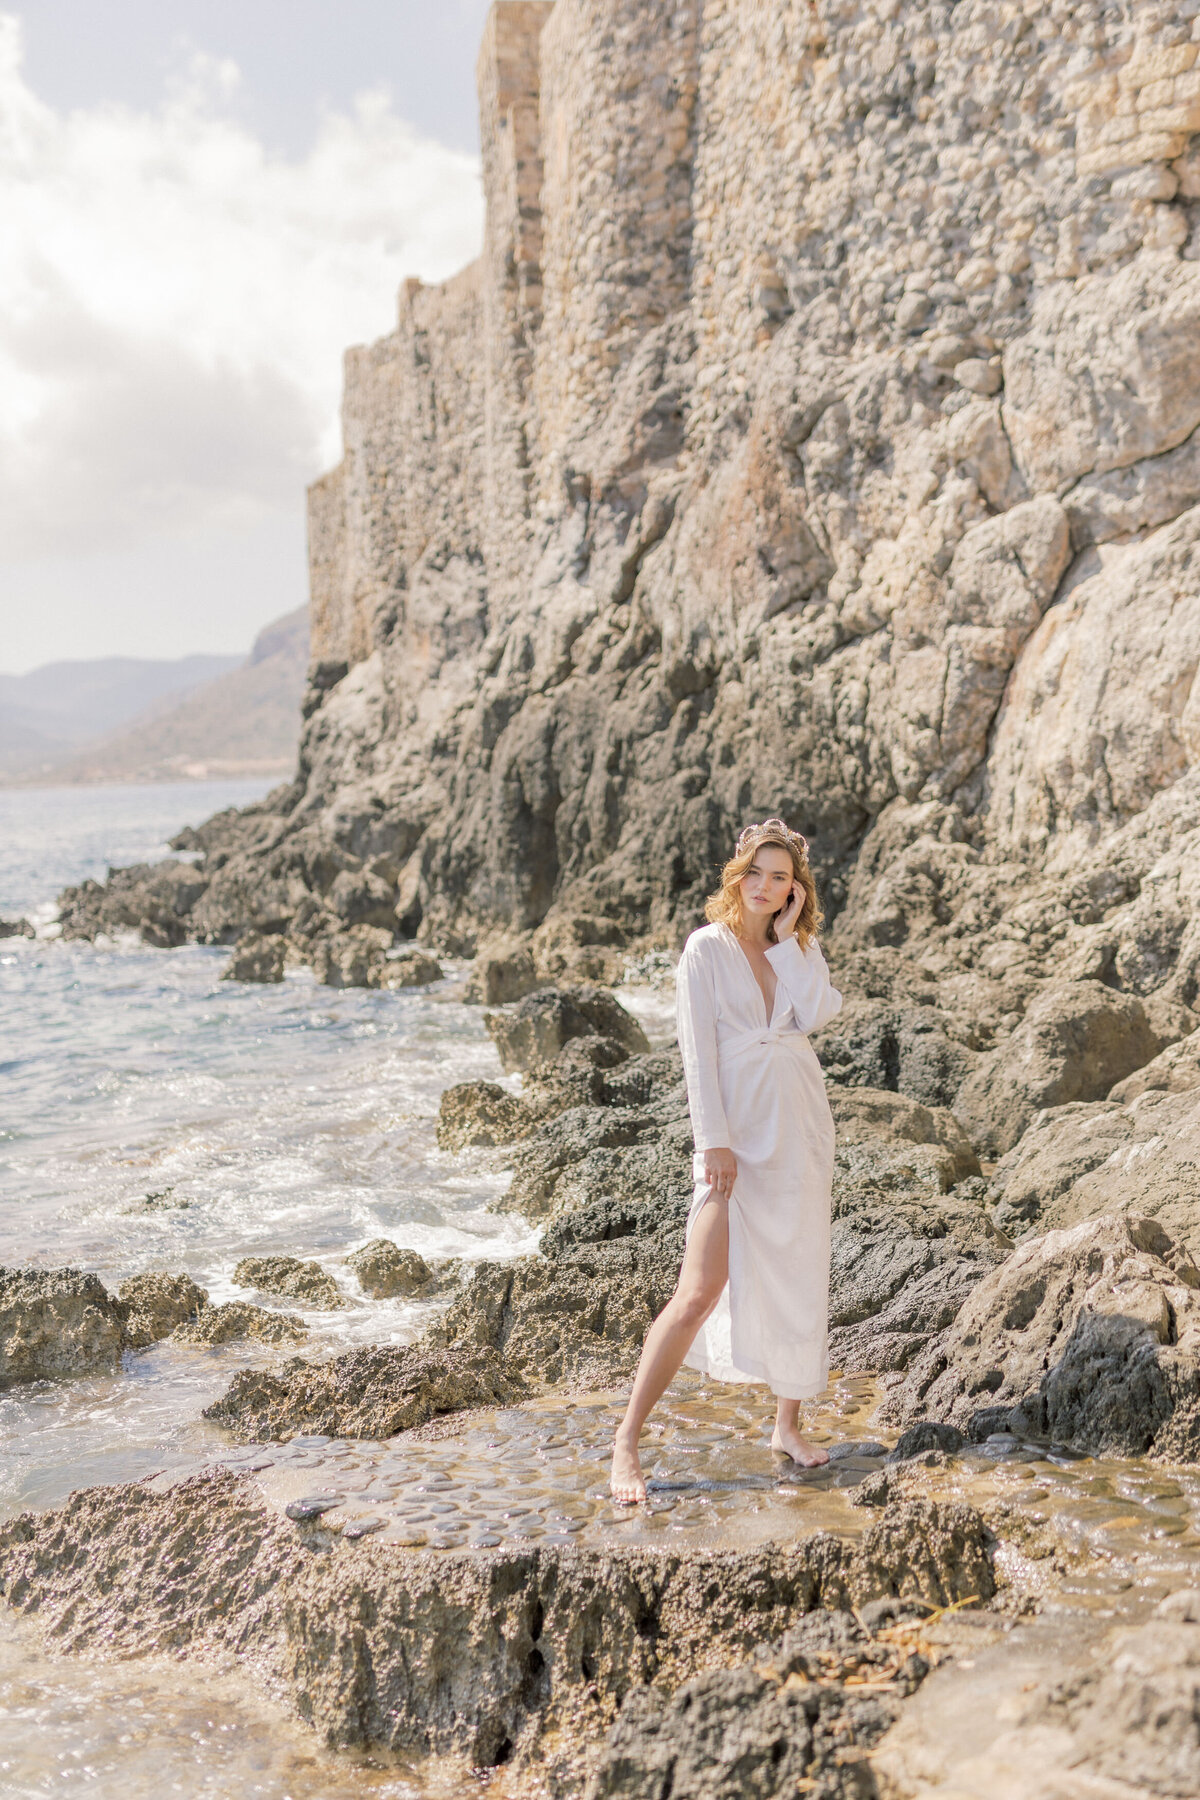 Beach Bridal Portrait Editorial Photoshoot in Greece 2